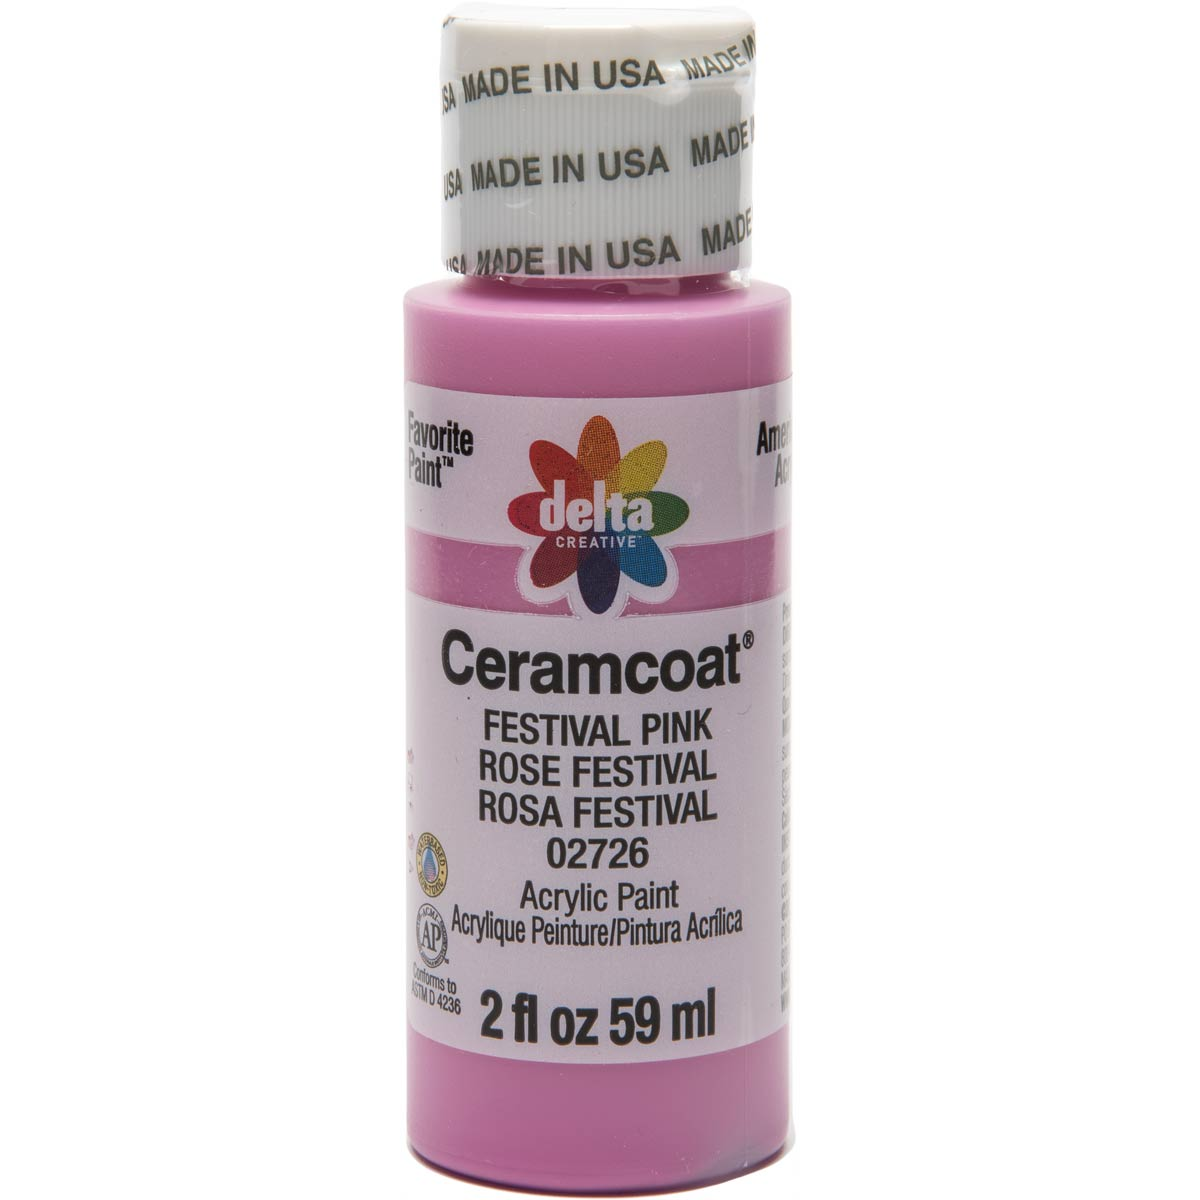 Delta Ceramcoat ® Acrylic Paint - Festival Pink, 2 oz.